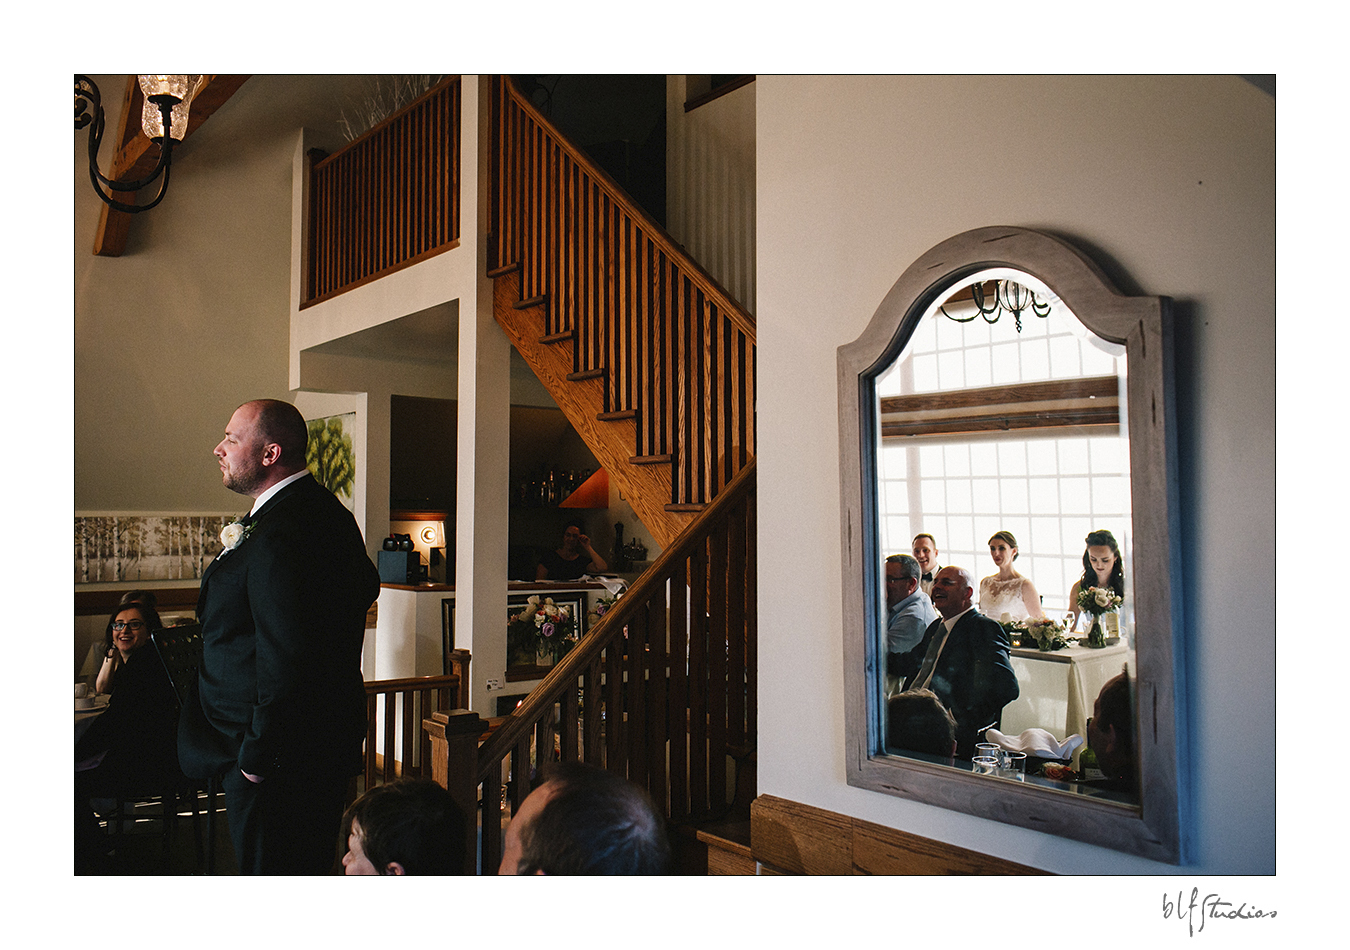 0031rimma-tyler--blfStudios-pineridgehollow-wedding.jpg